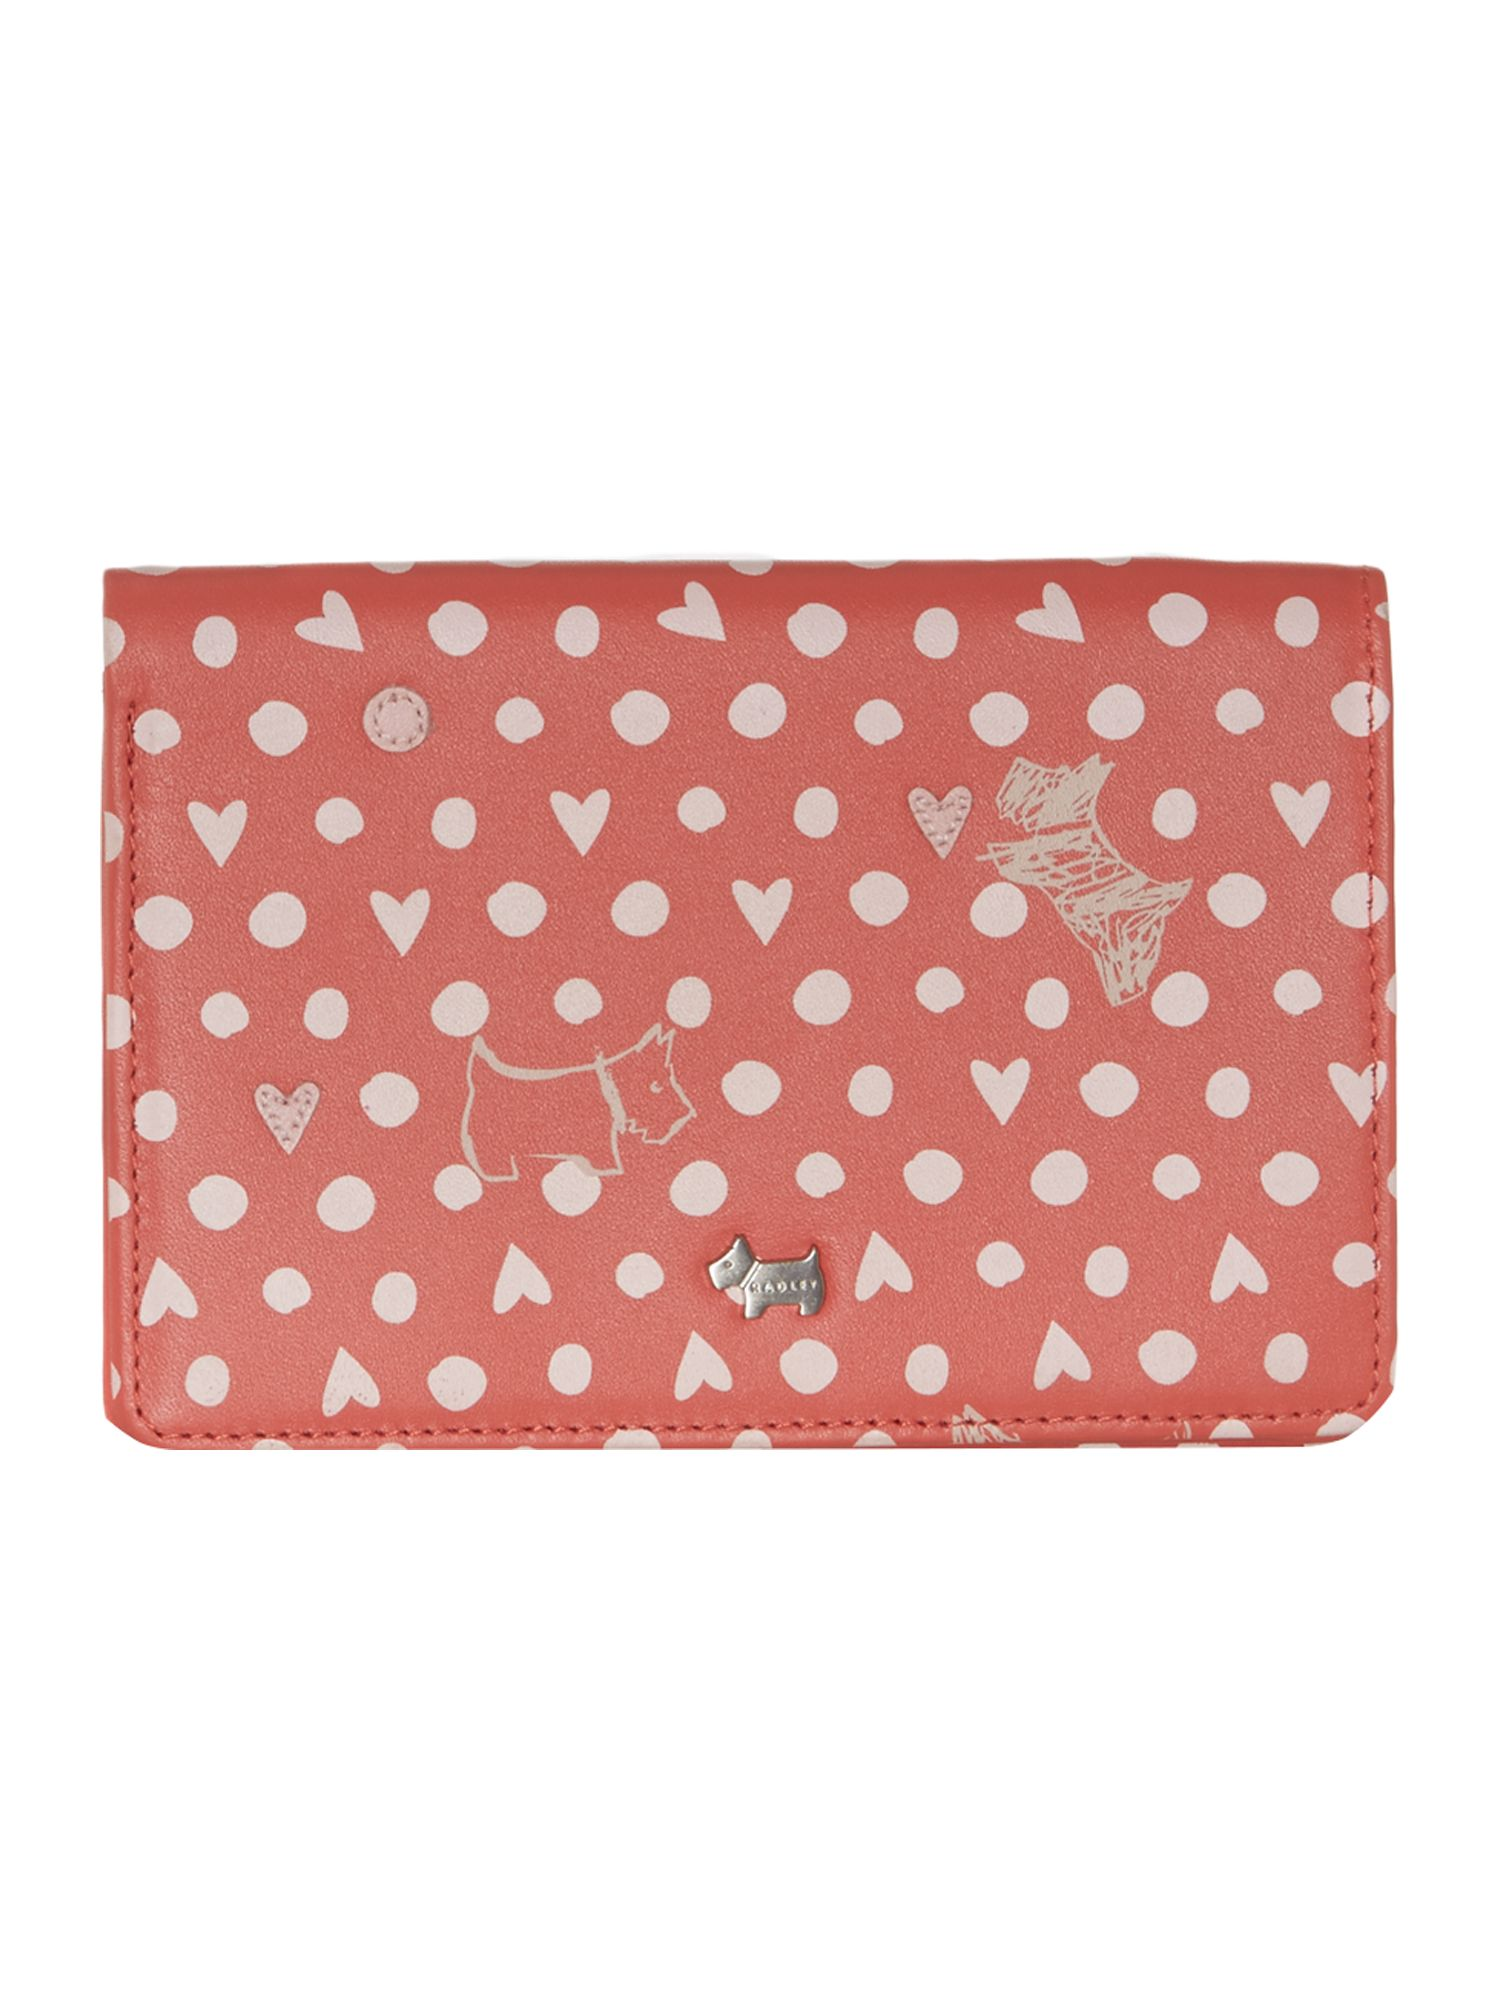 Dog n spot coral ziparound purse